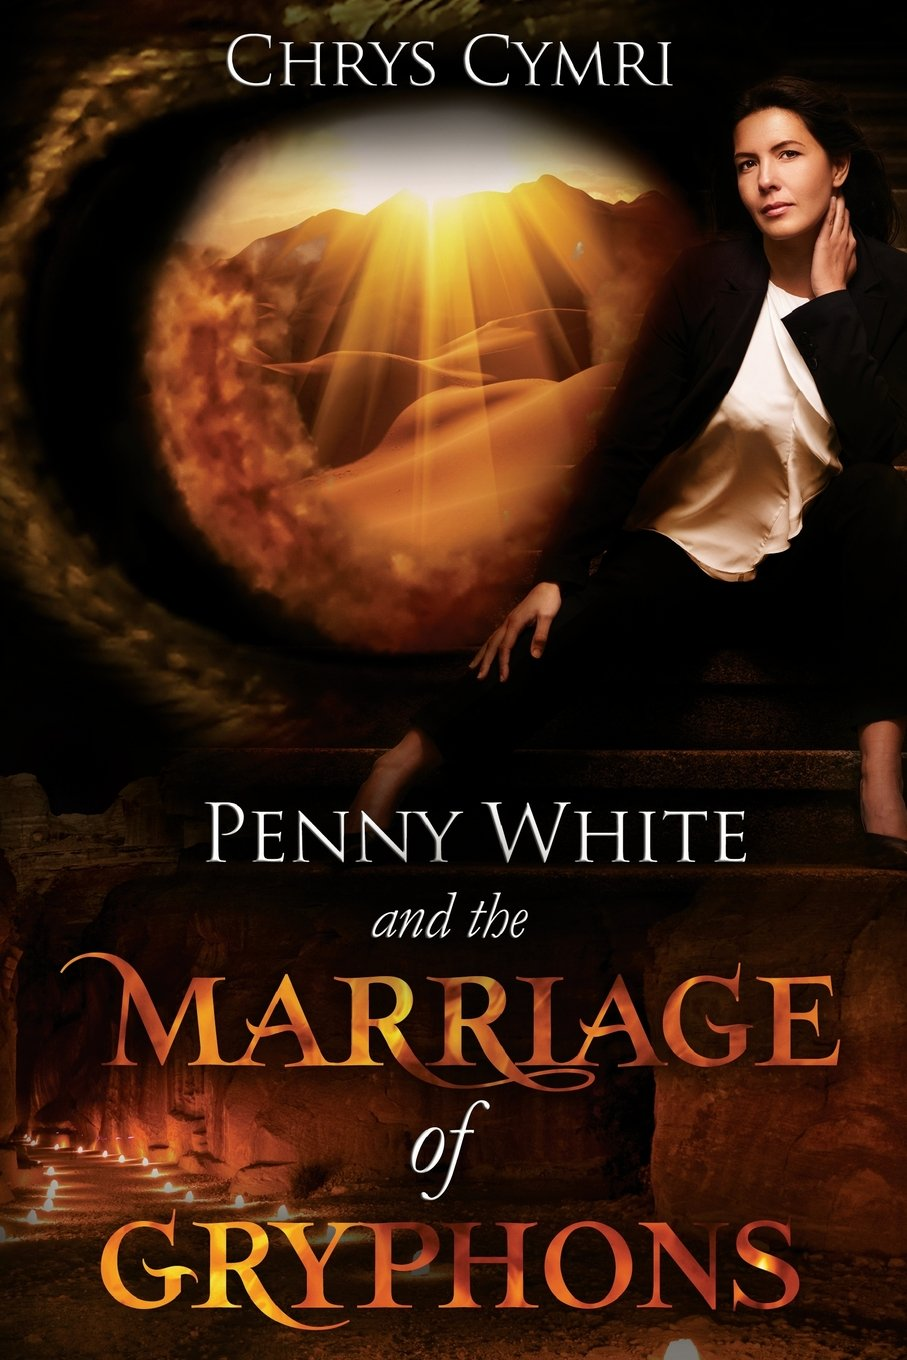 the marriage of gryphons penny white volume 3 chrys cymri